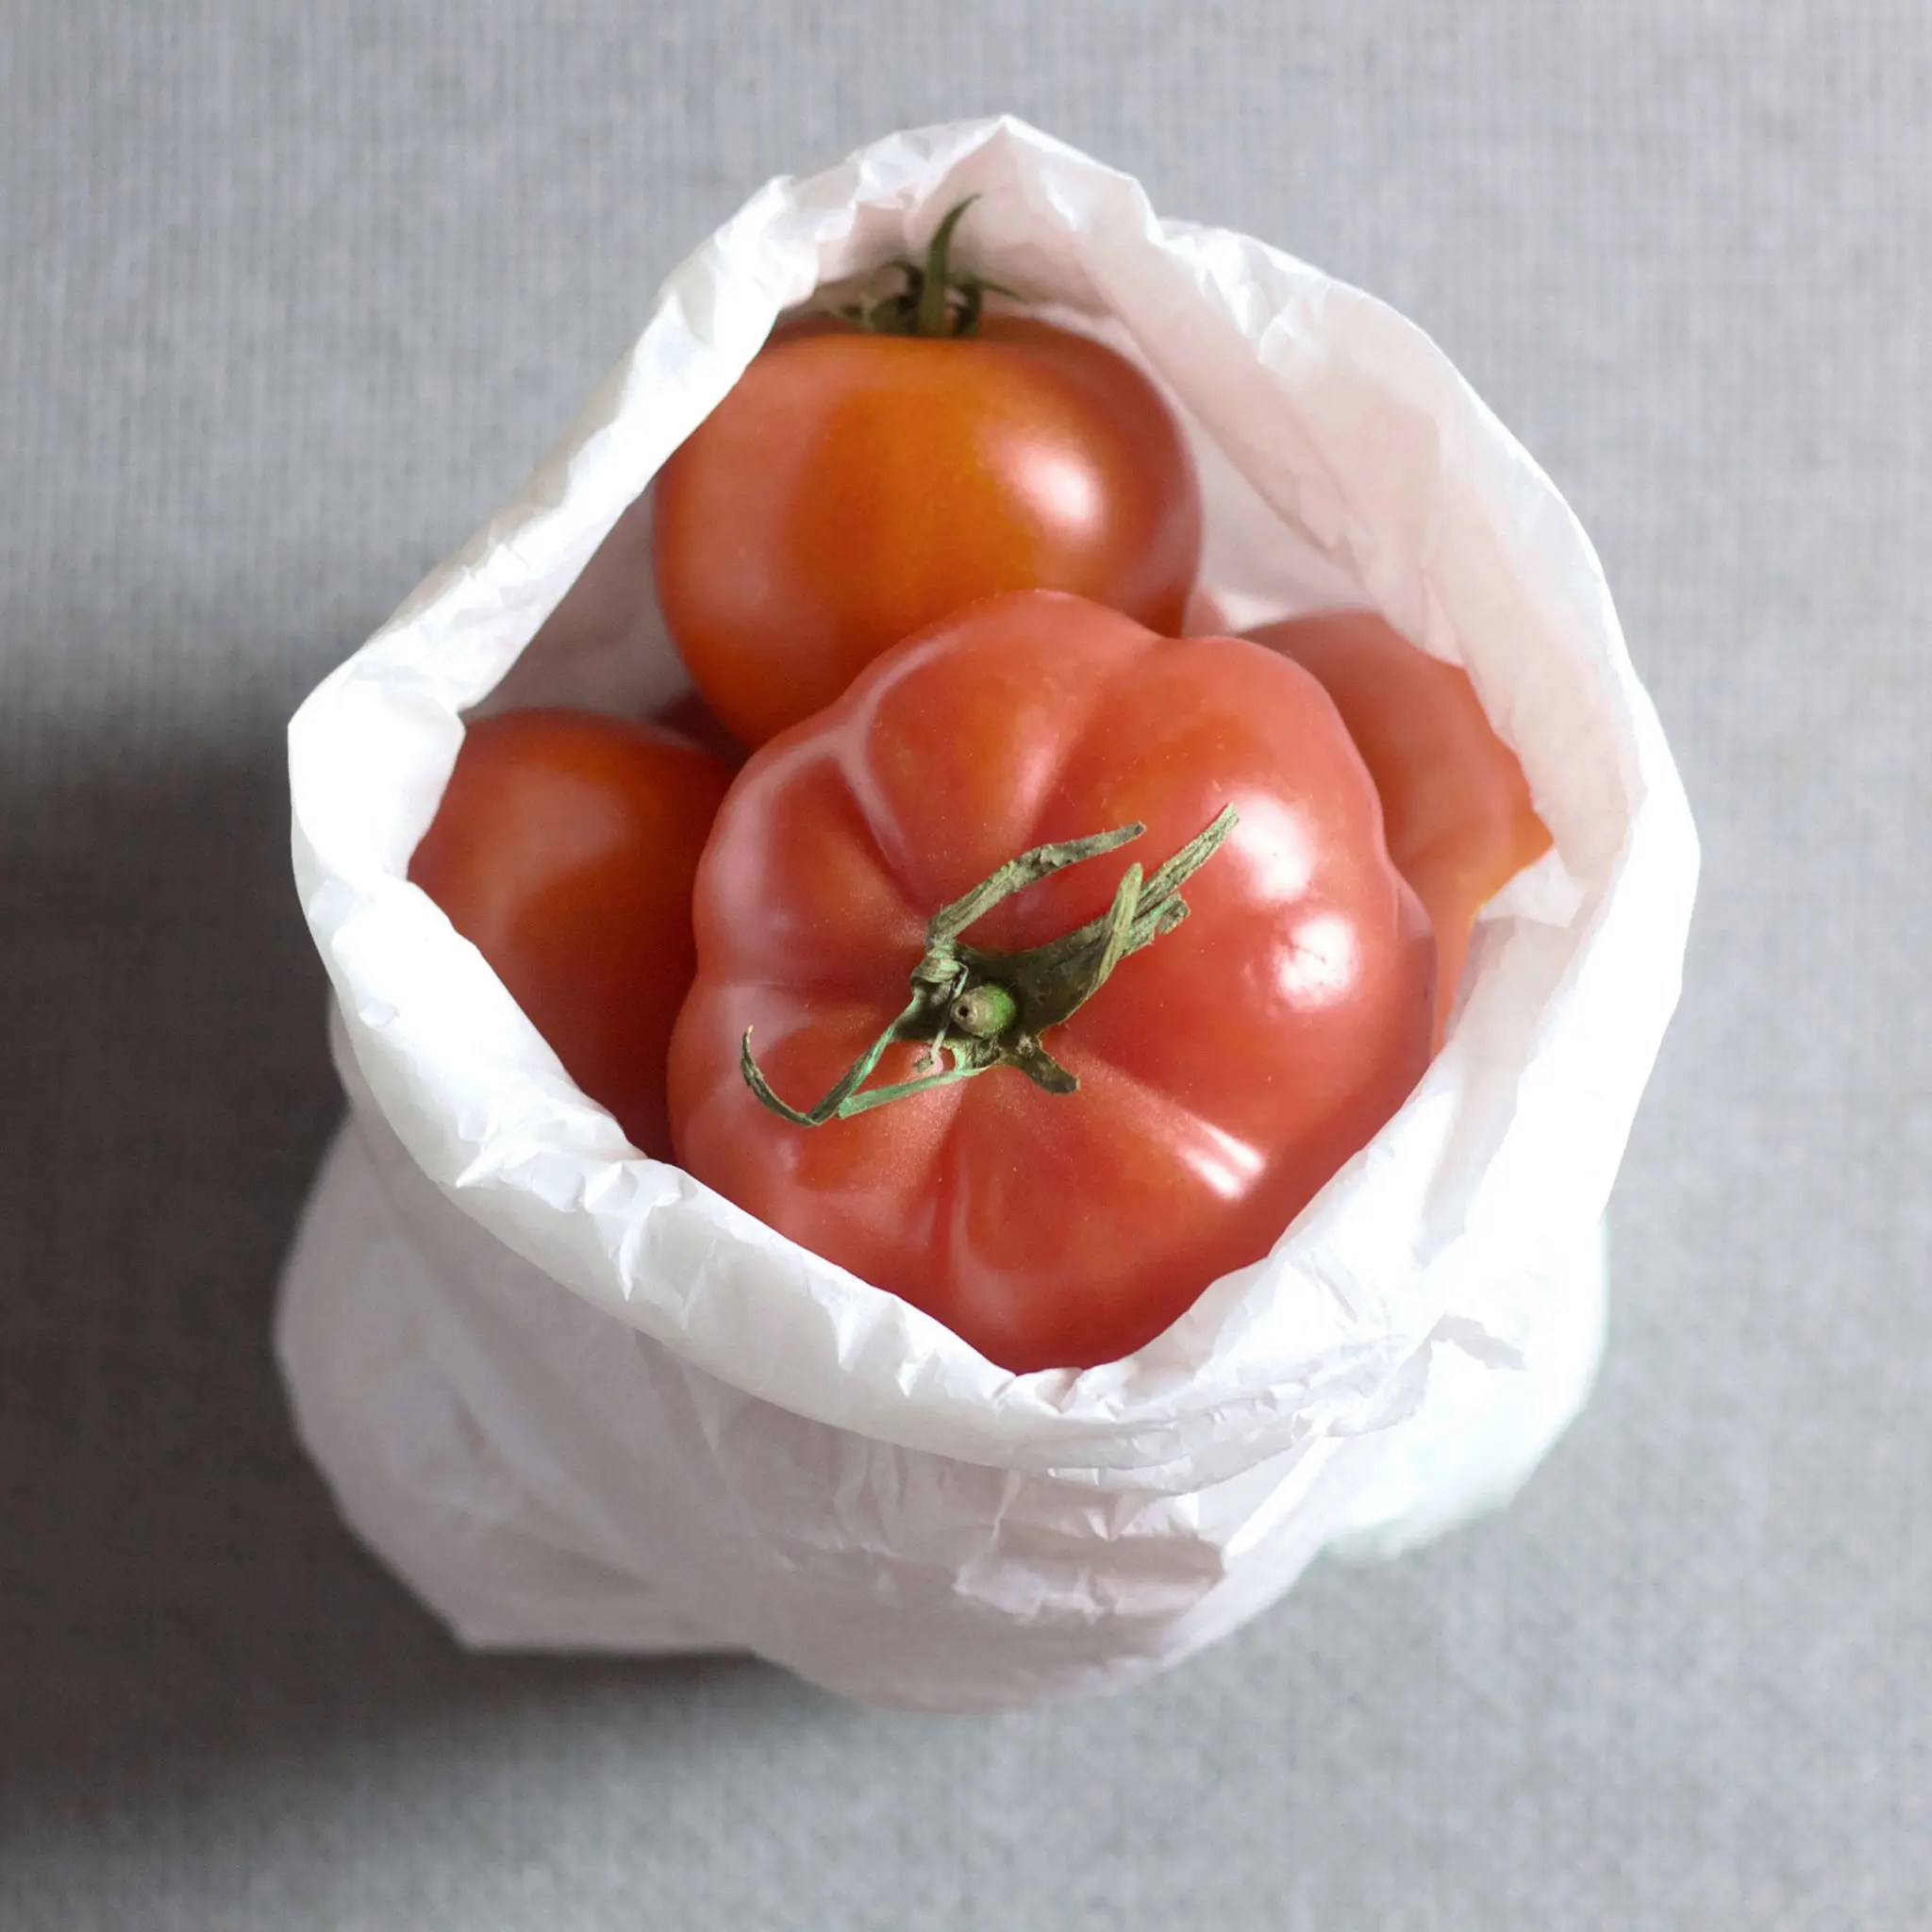 All you need to know about tomatoes 4